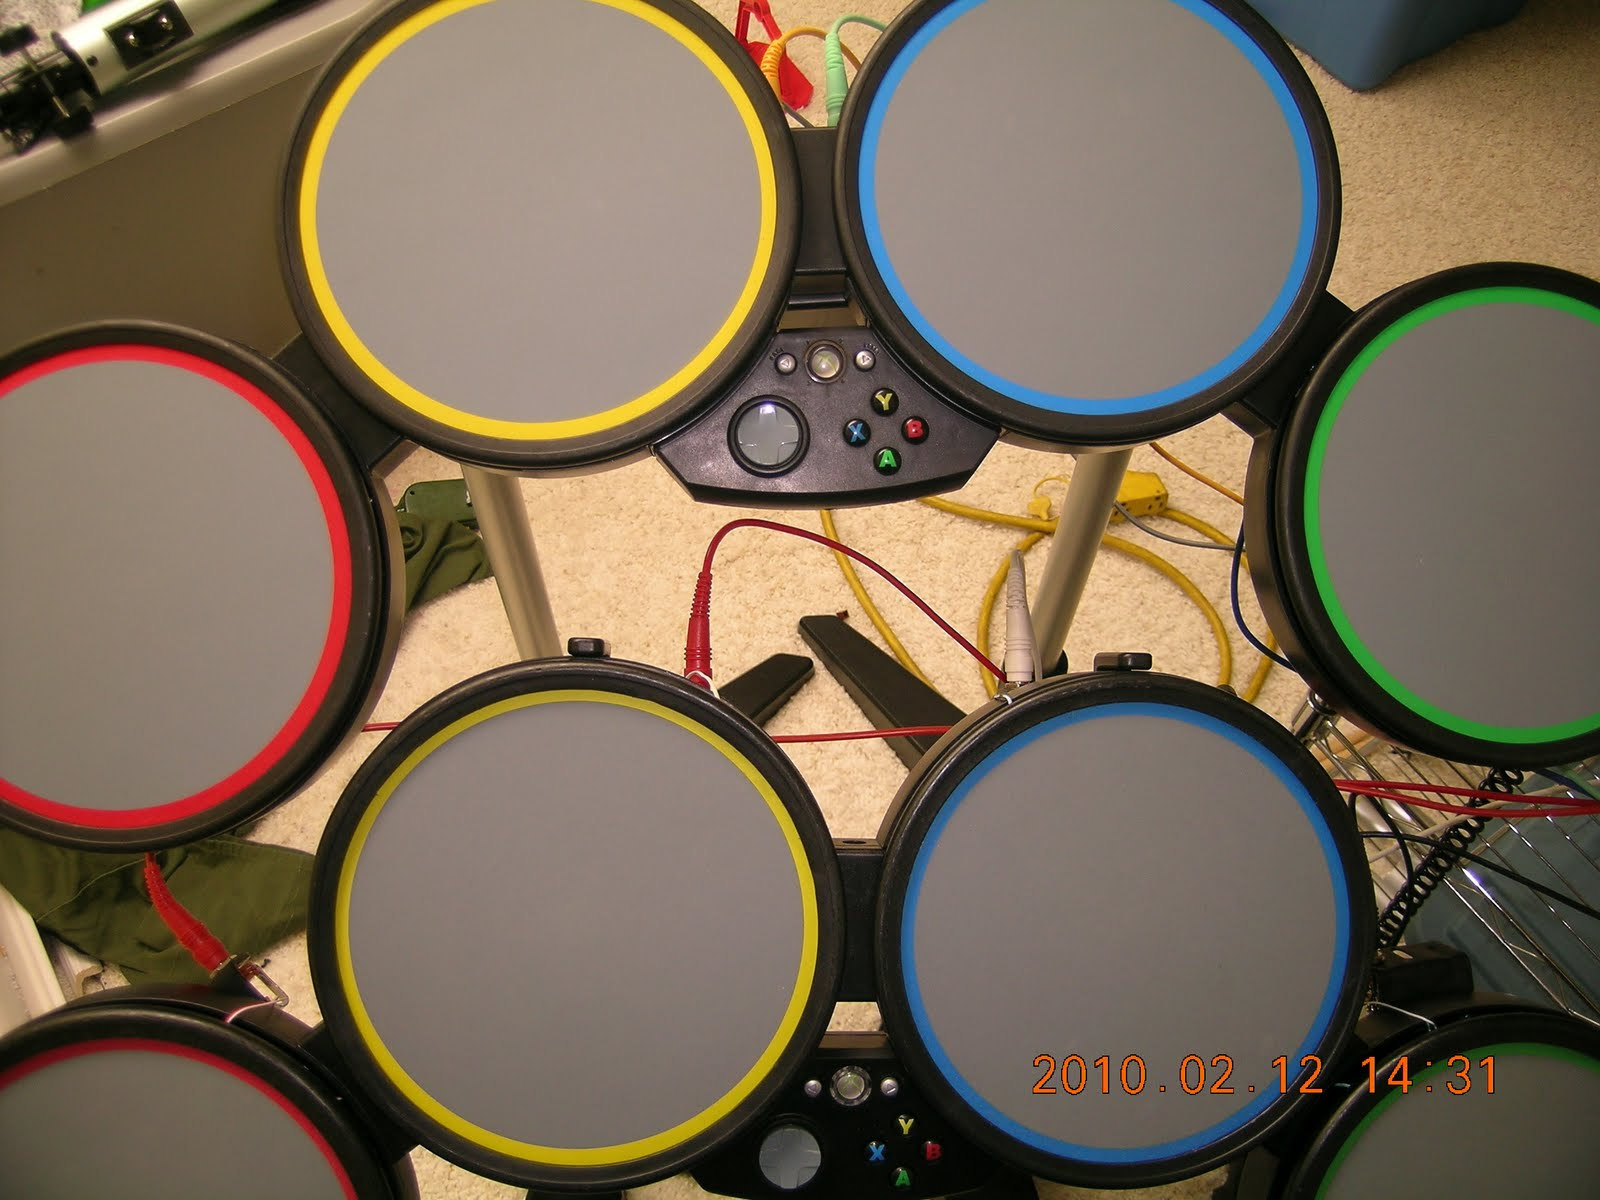 This is my electronic drums that i built from rockband drums.